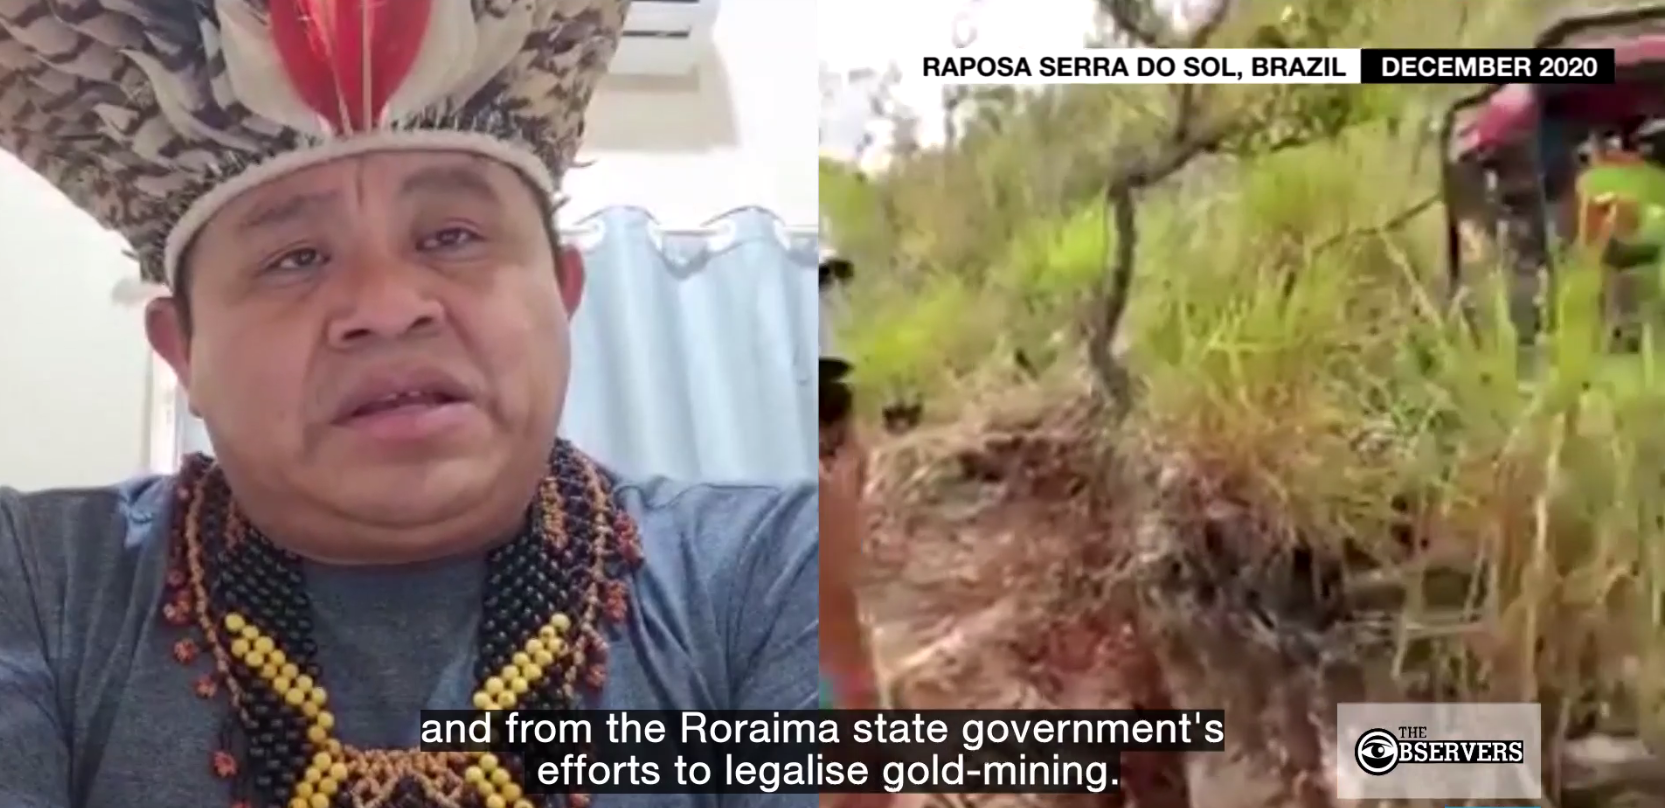 A group of indigenous leaders in Brazil are raising the alarm about the widespread illegal mining taking place in the country's indigenous territory, as documented in aerial photos showing vast mining camps on their land.